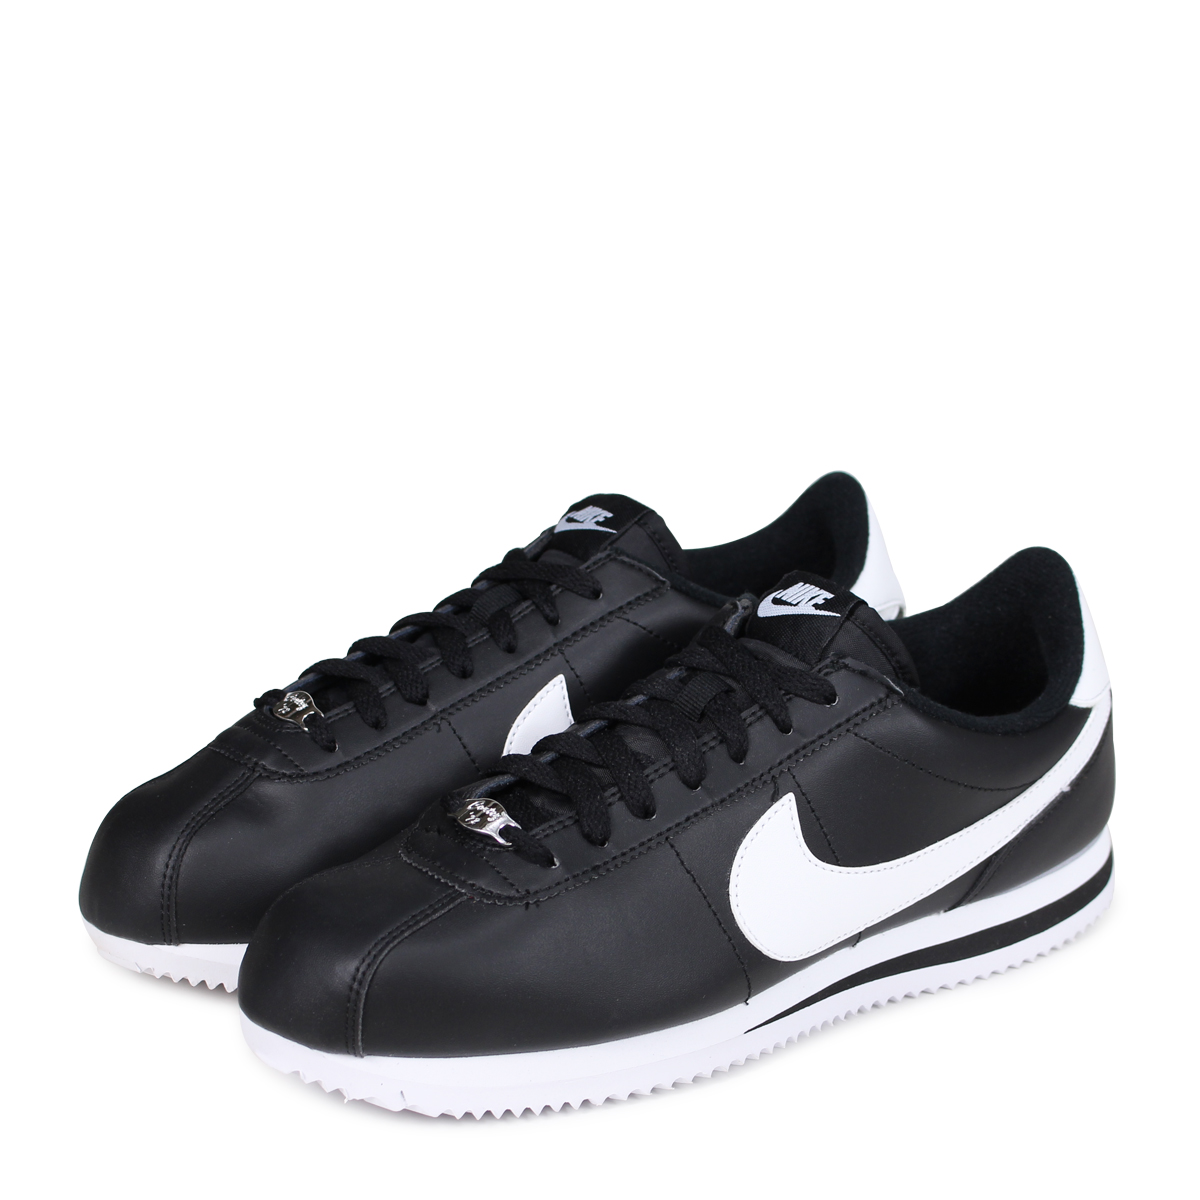 cheap for discount 51a7a 29091 Nike NIKE Cortez sneakers CORTEZ BASIC LEATHER 819719-012 mens shoes black  ...